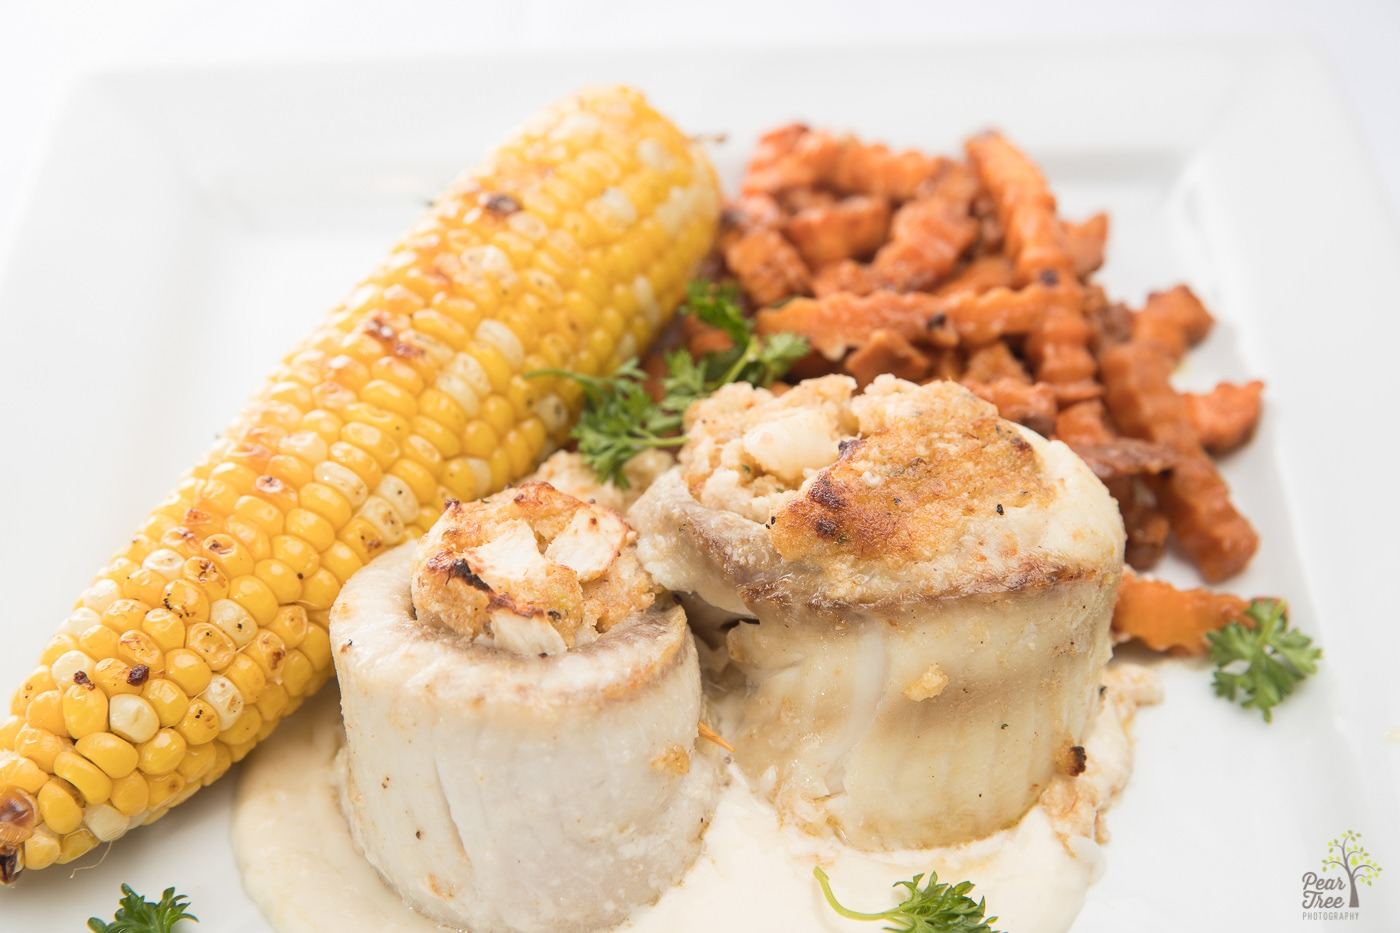 Stuffed tilapia rolls with cajun corn on the cob and crinkly sweet potato fries made by Divine Taste of Heaven.